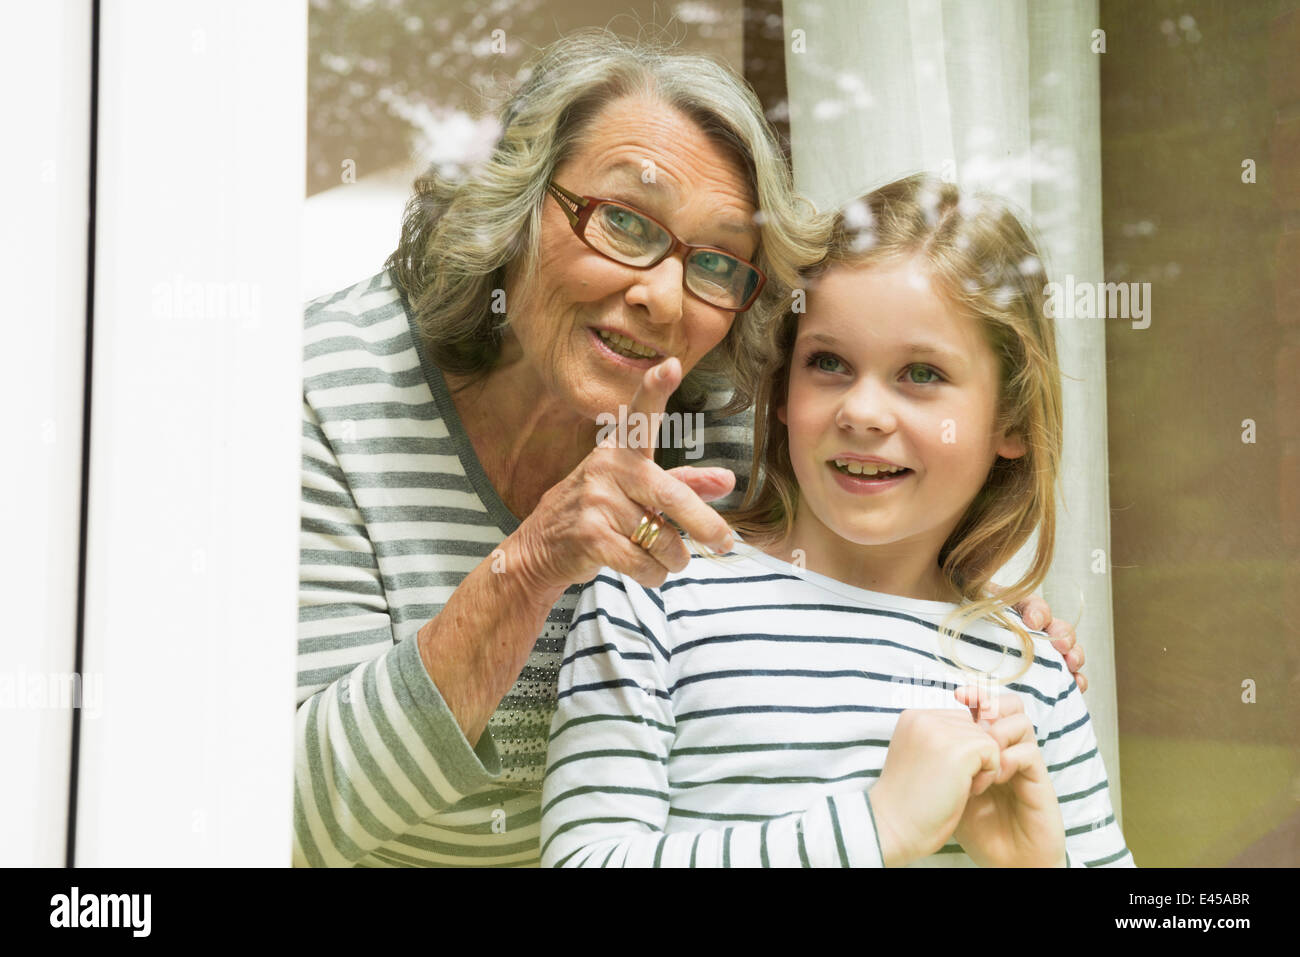 Grandmother and granddaughter bonding - Stock Image